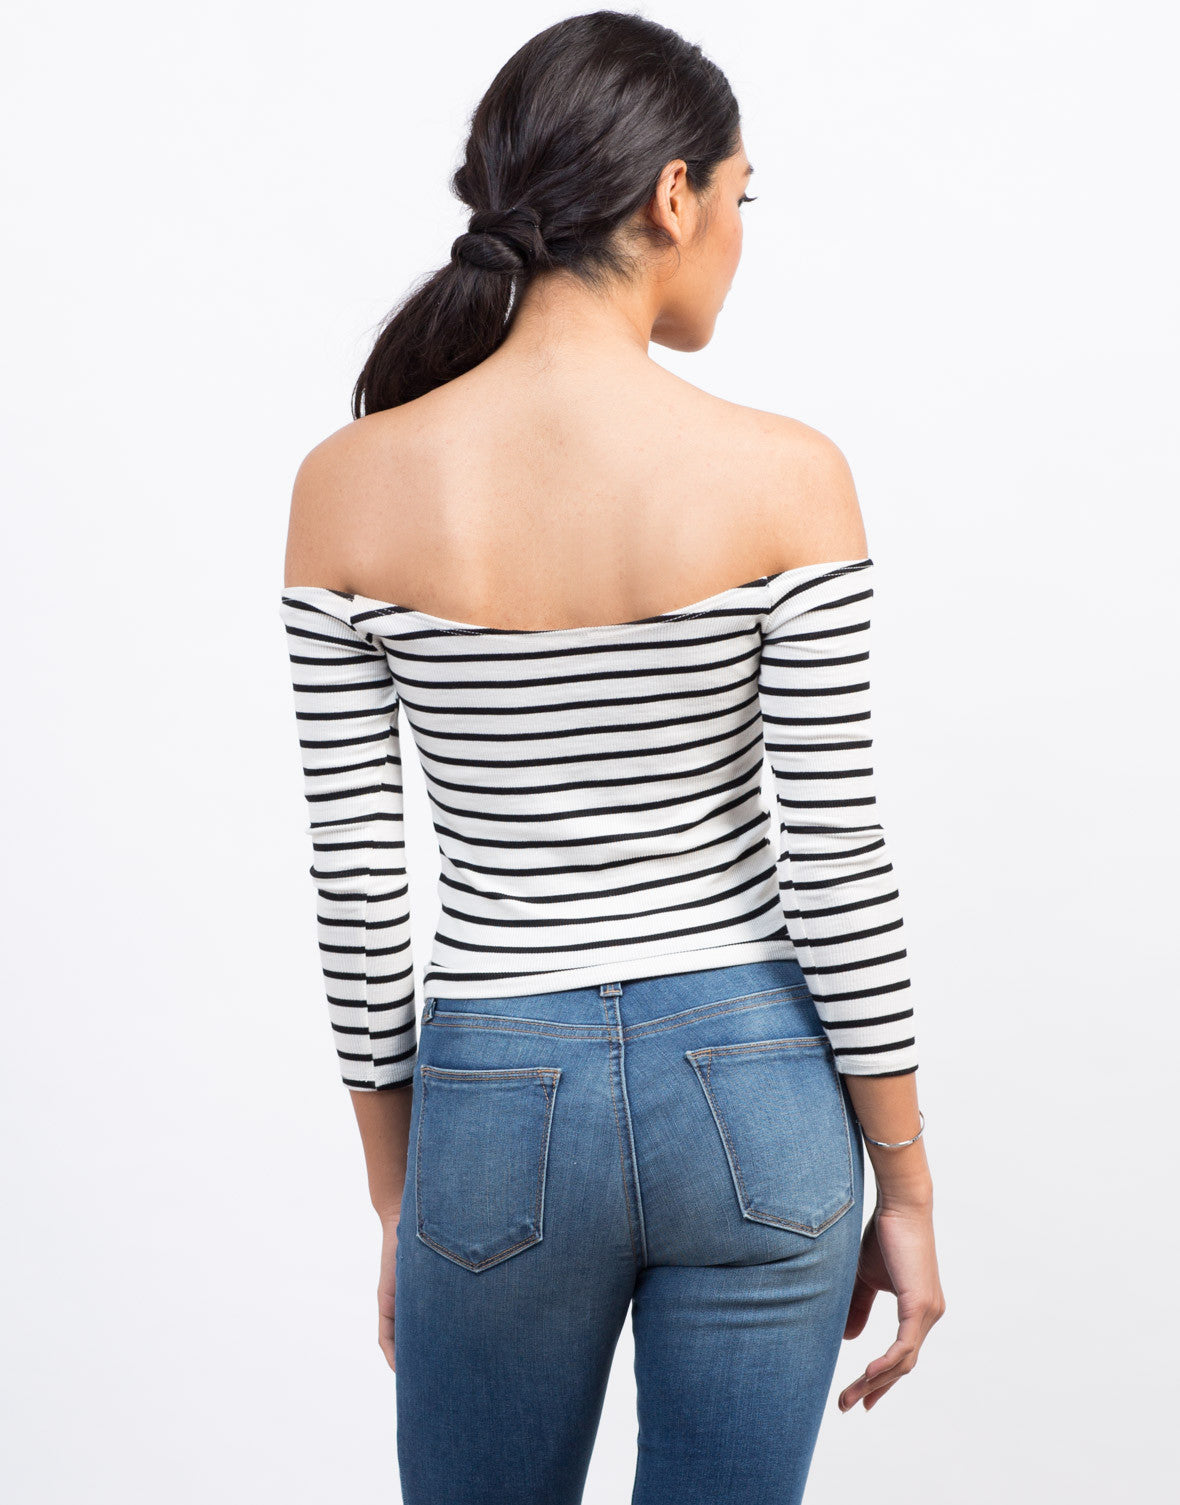 Back View of Striped Off-the-Shoulder Top